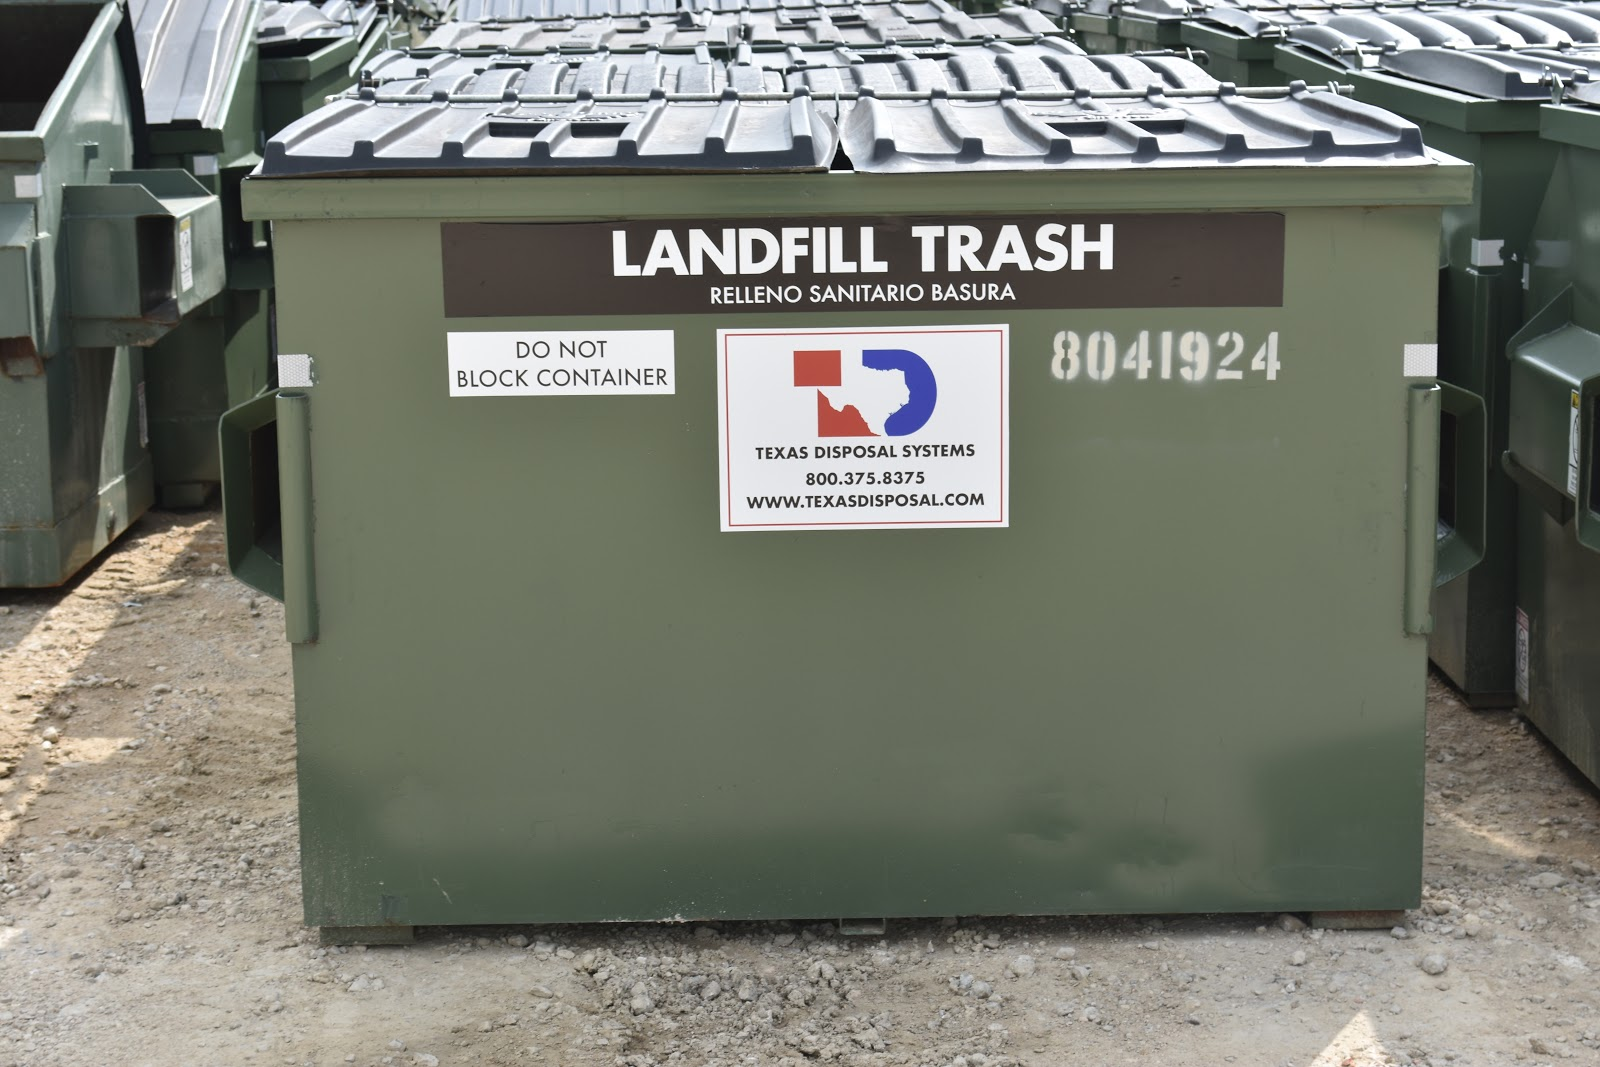 Front-load dumpsters for Texas business